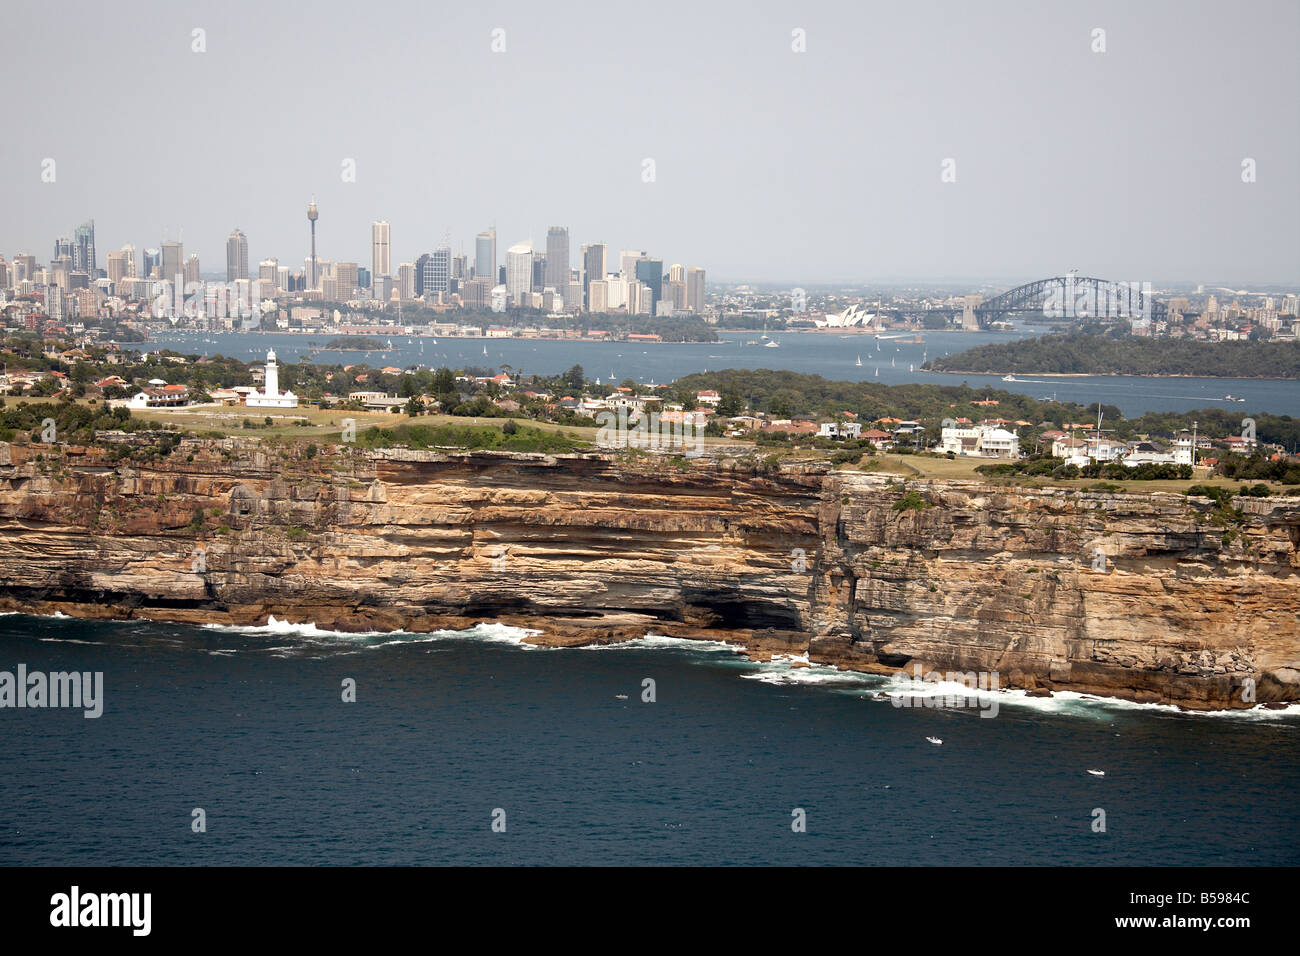 Aerial view south west of Gap Park Watsons Bay city skyscrapers and Harbour Bridge in distance Sydney NSW Australia - Stock Image